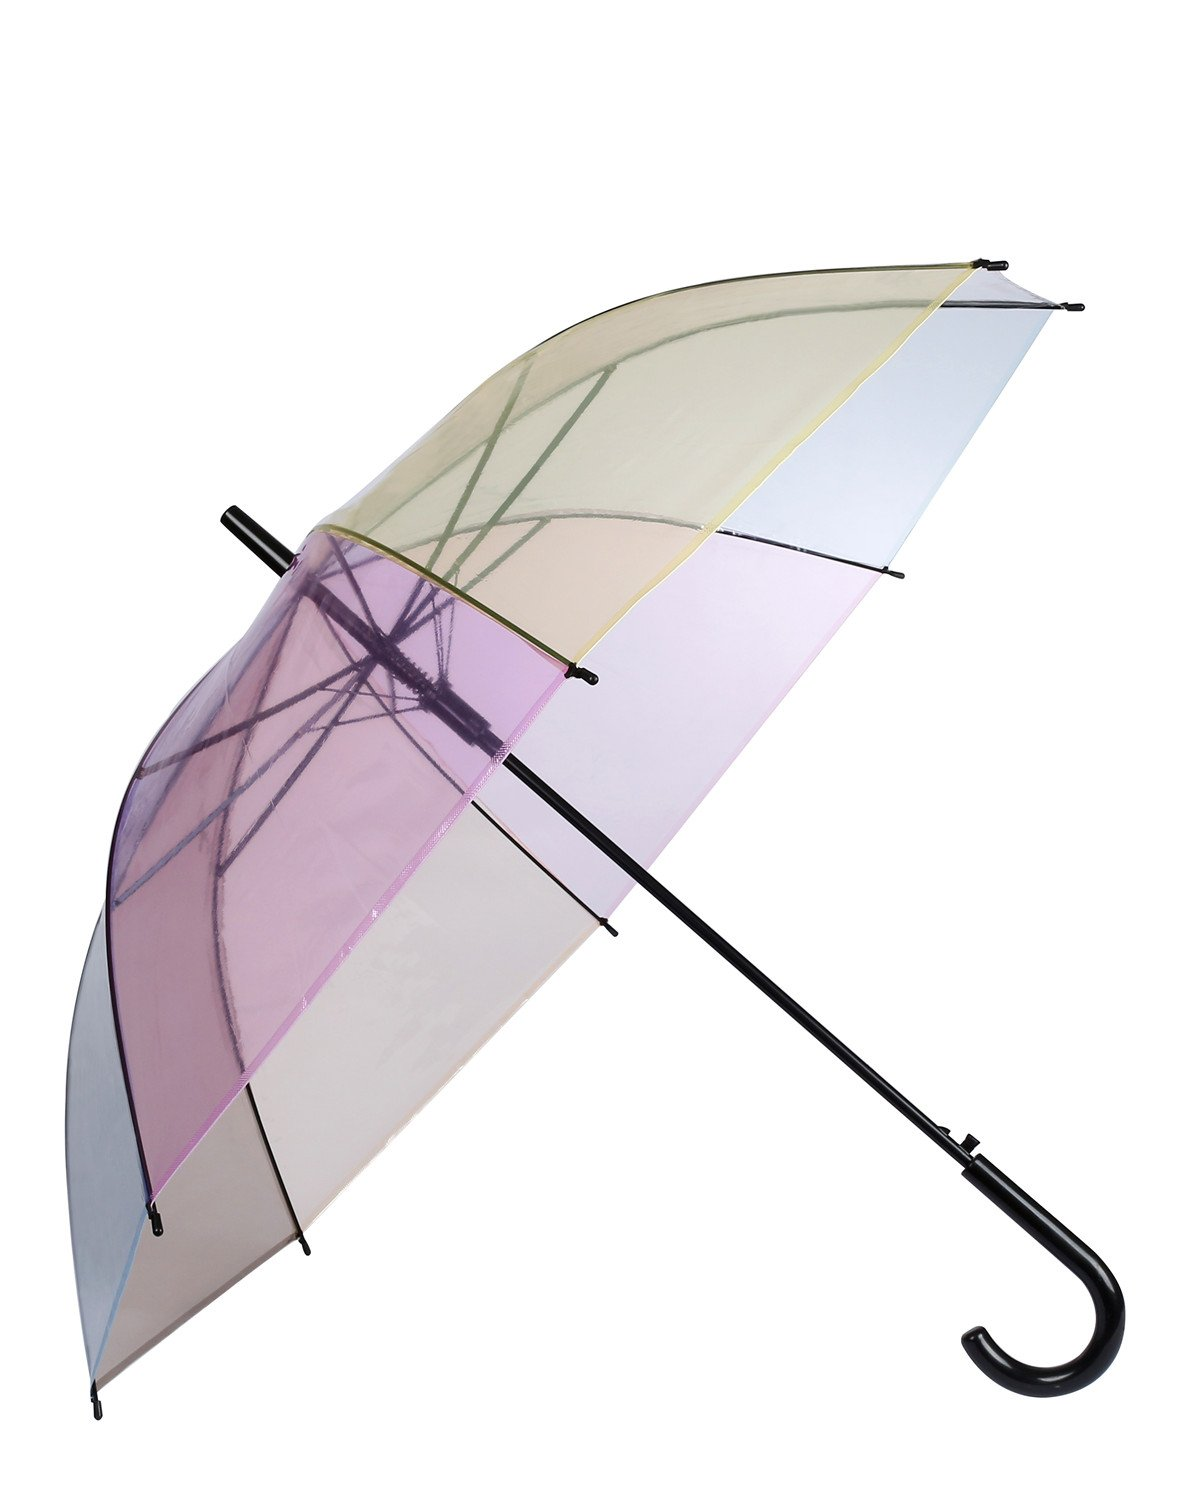 Caeser Archy Transparent Umbrella Large Clear Umbrella Waterproof Stick Umbrellas in Multi Colors for Women